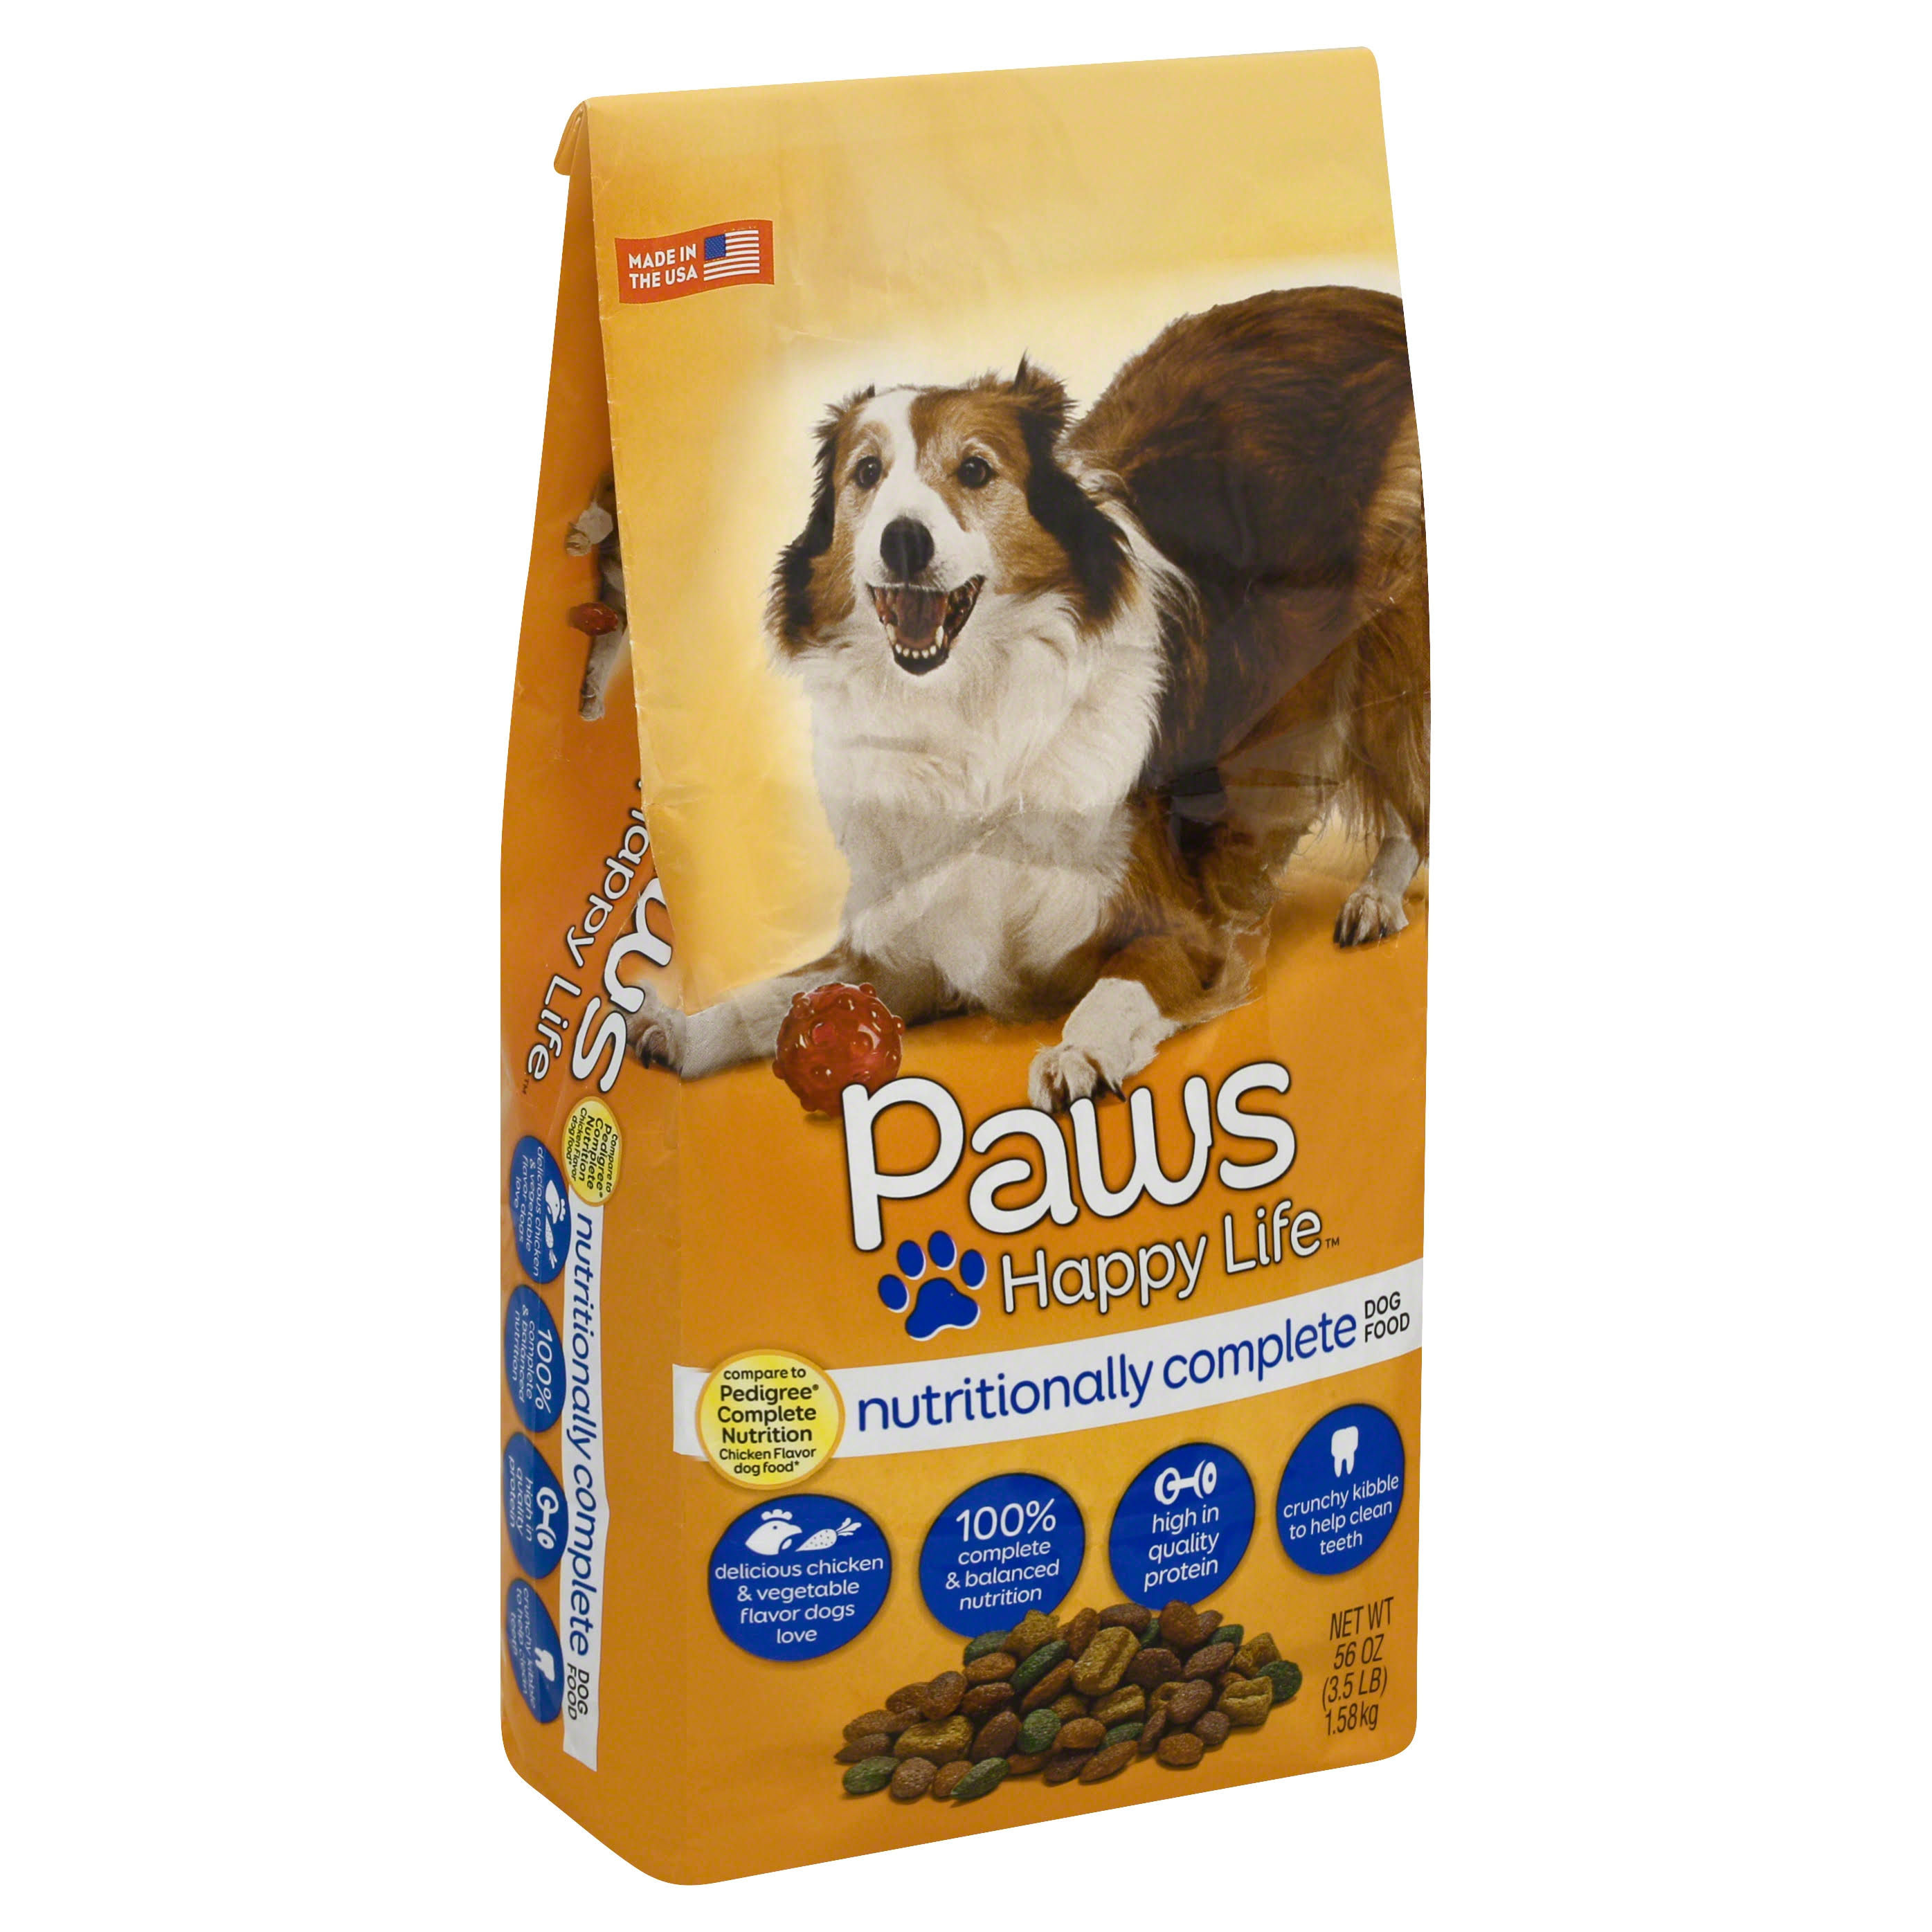 Paws Happy Life Dog Food, Nutritionally Complete - 56 oz